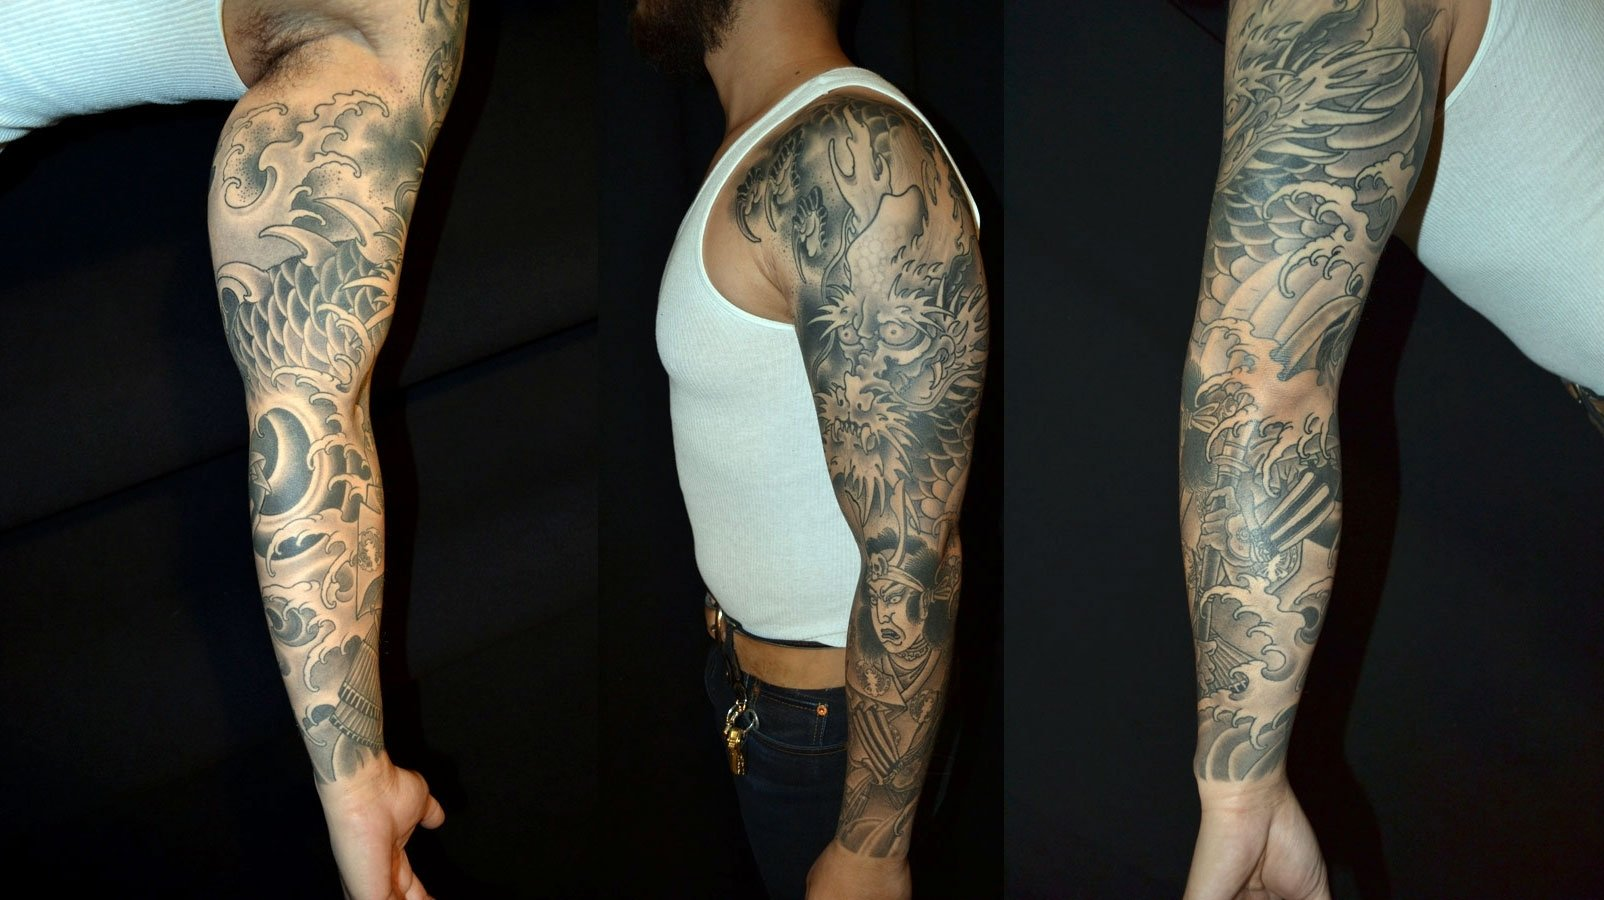 10 Cute Tattoos Sleeves Ideas For Black Guys tattoos sleeves ideas for black guys cool tattoos bonbaden 2020